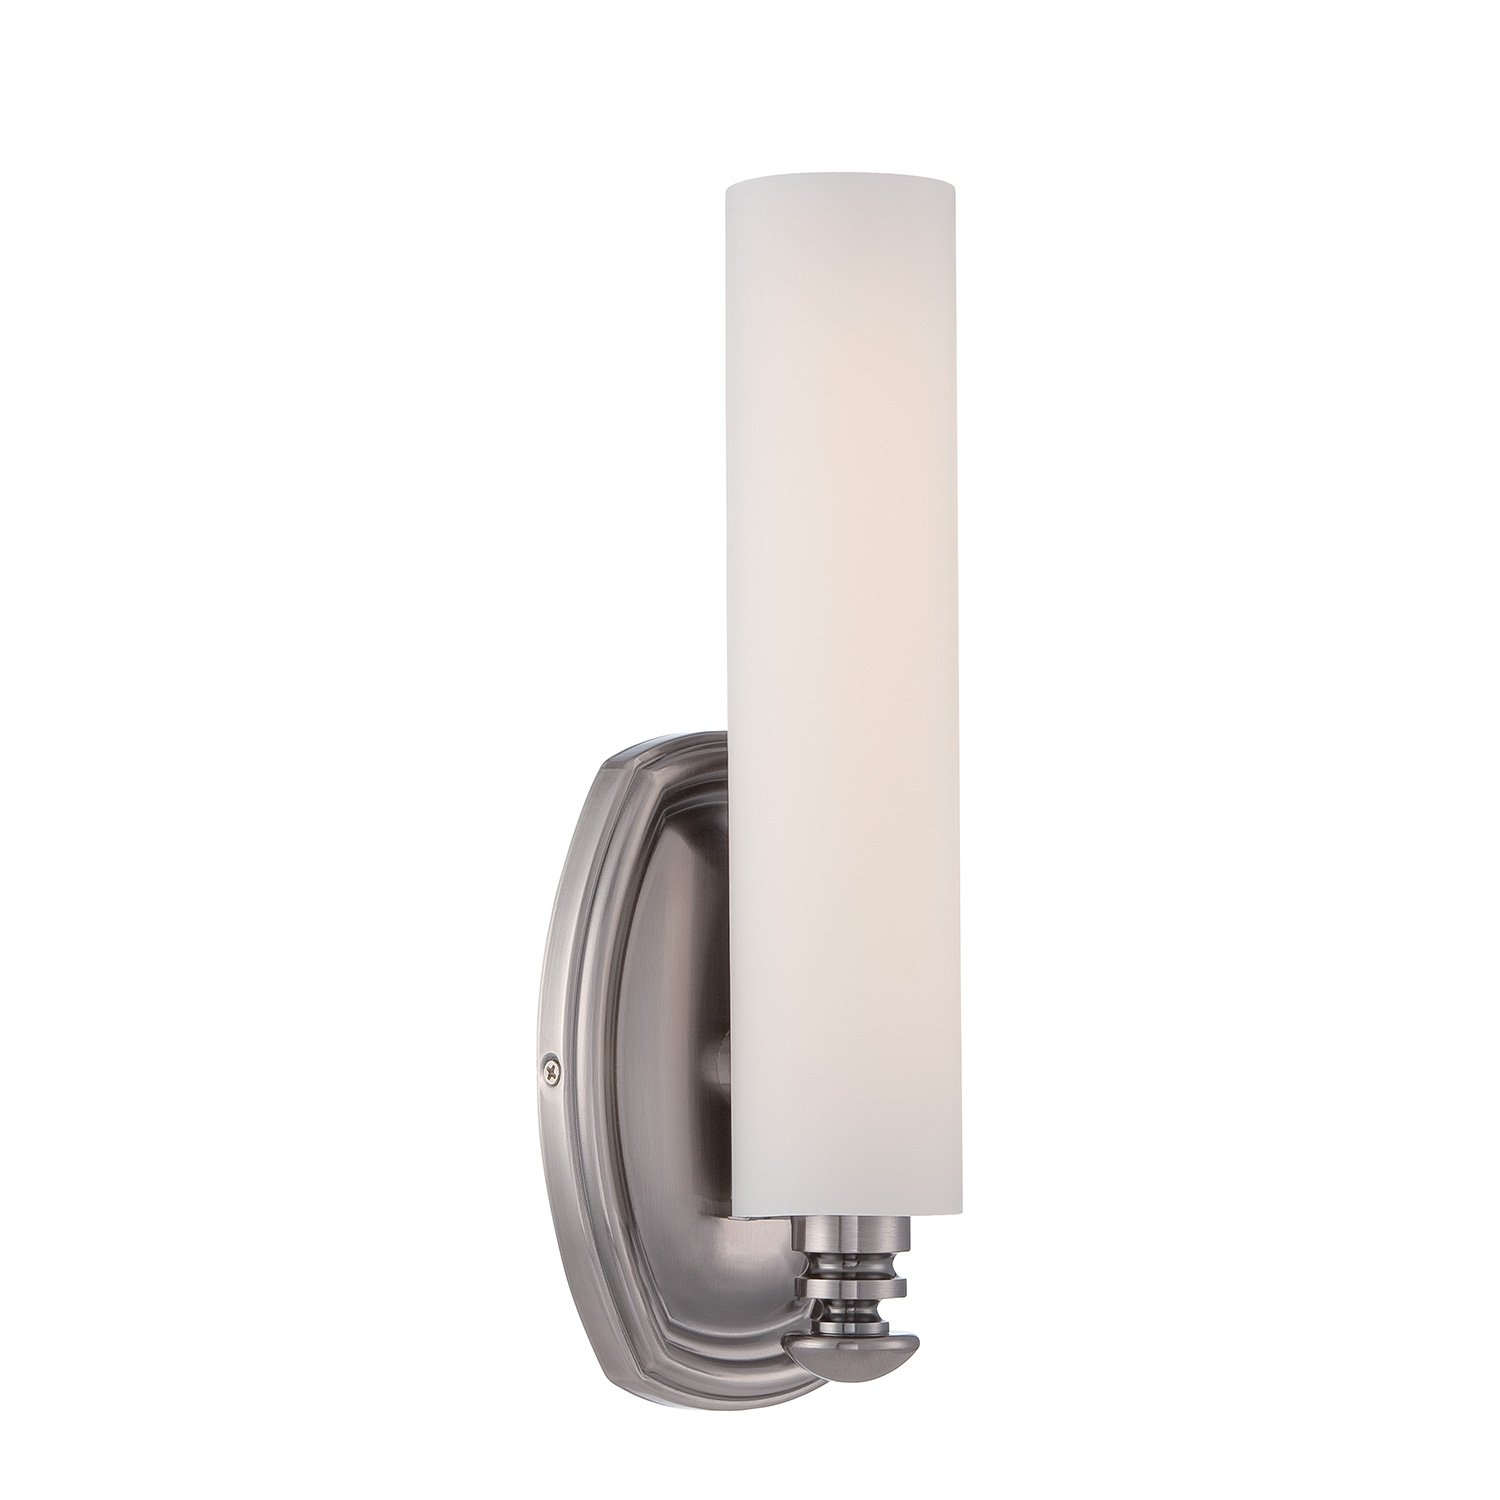 WAC Lighting WS-7012-AN Small 12-Inch Astoria Vanity Sconce